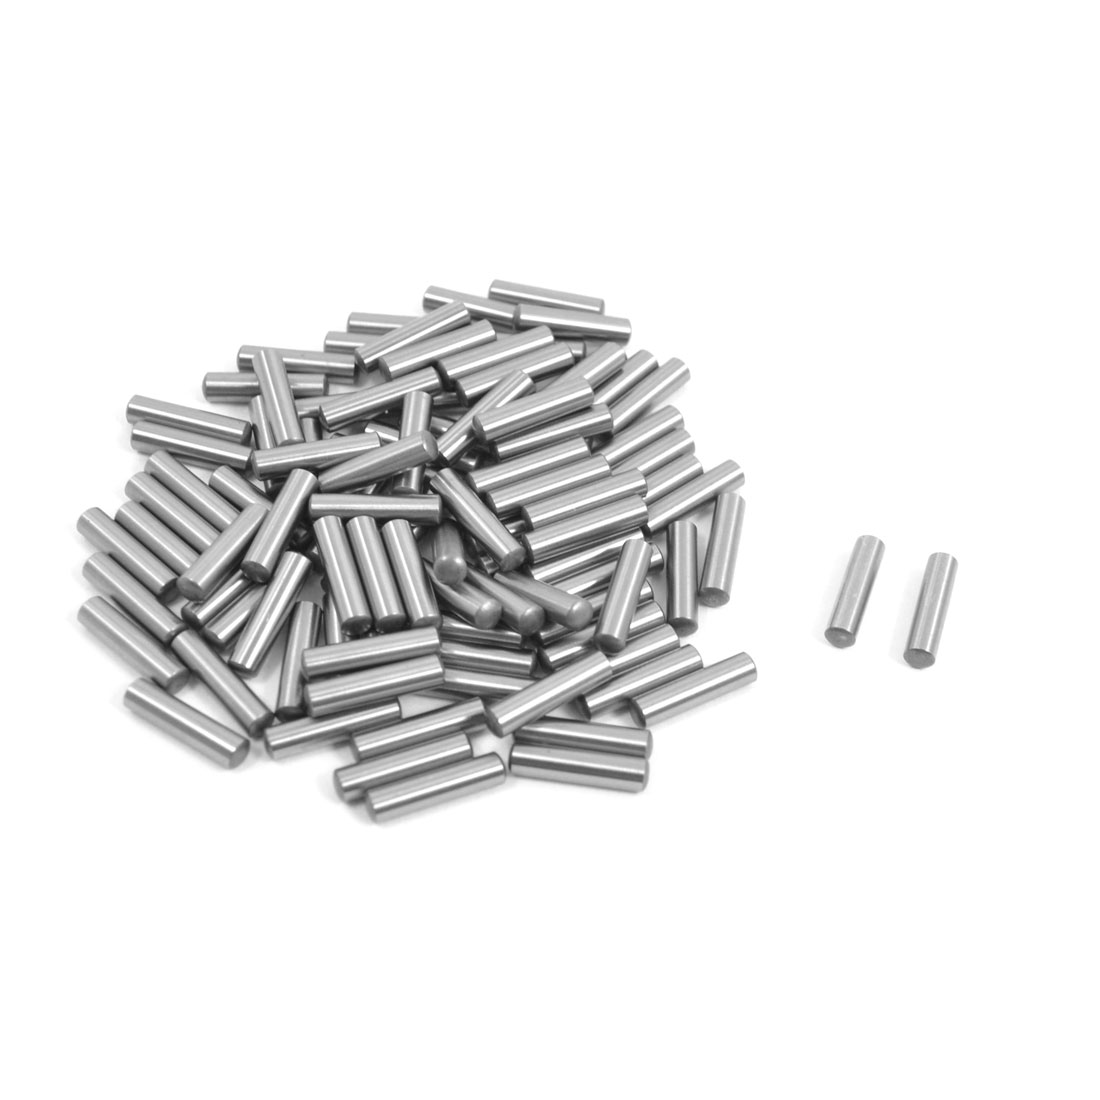 100 Pcs Stainless Steel 3.1mm x 13mm Parallel Dowel Pins Fasten Elements Silver Tone